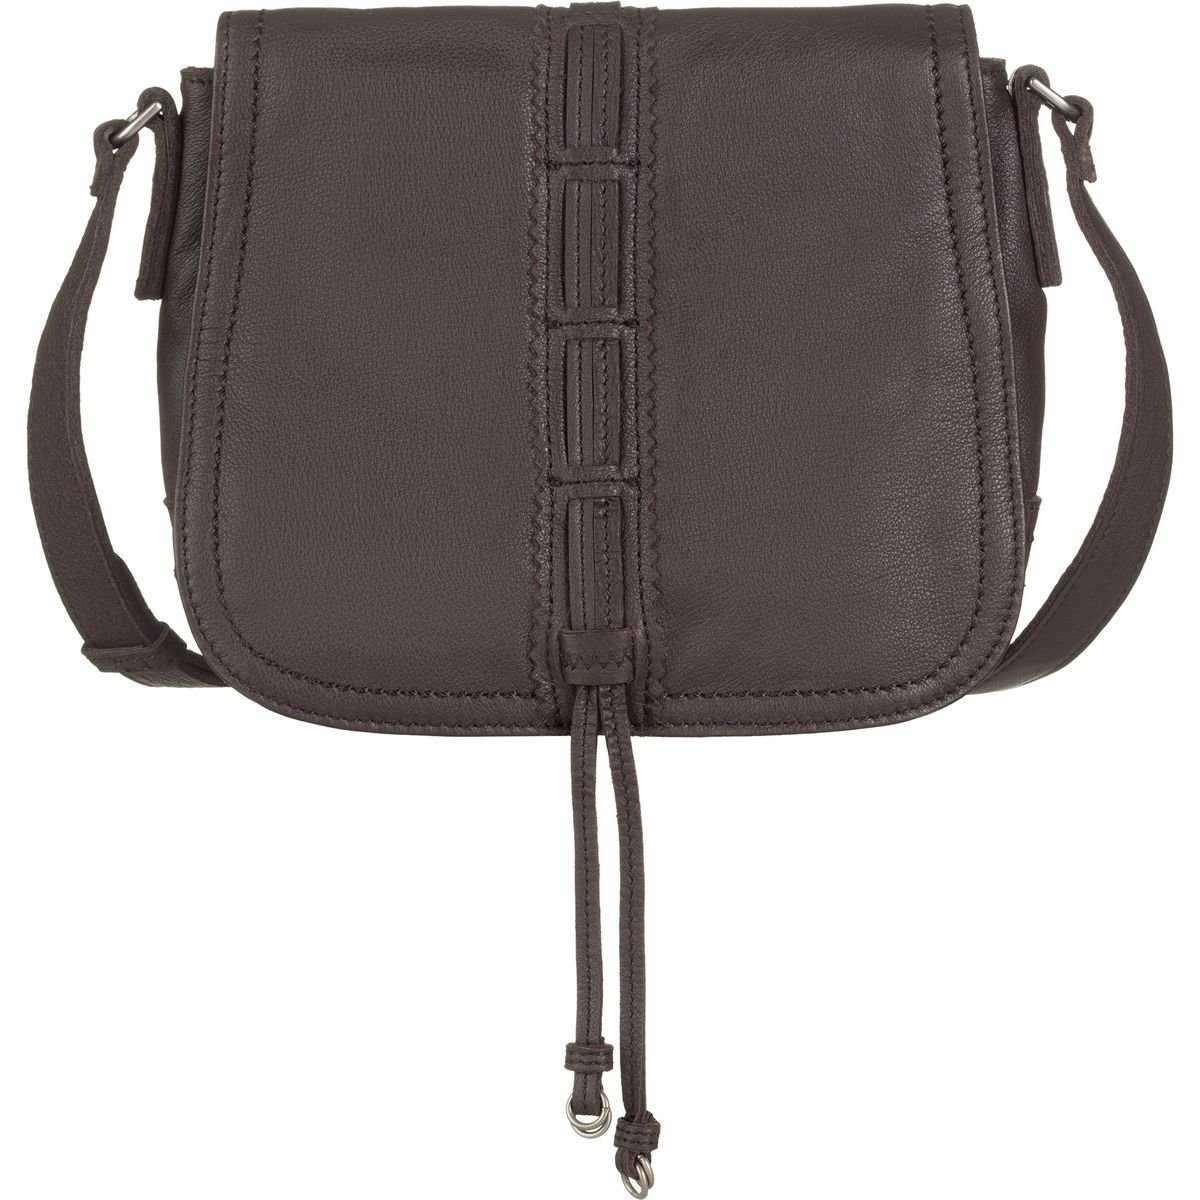 Liebeskind Berlin Women's Huntsville Leather Saddle Bag Eagle Brown by Liebeskind Berlin